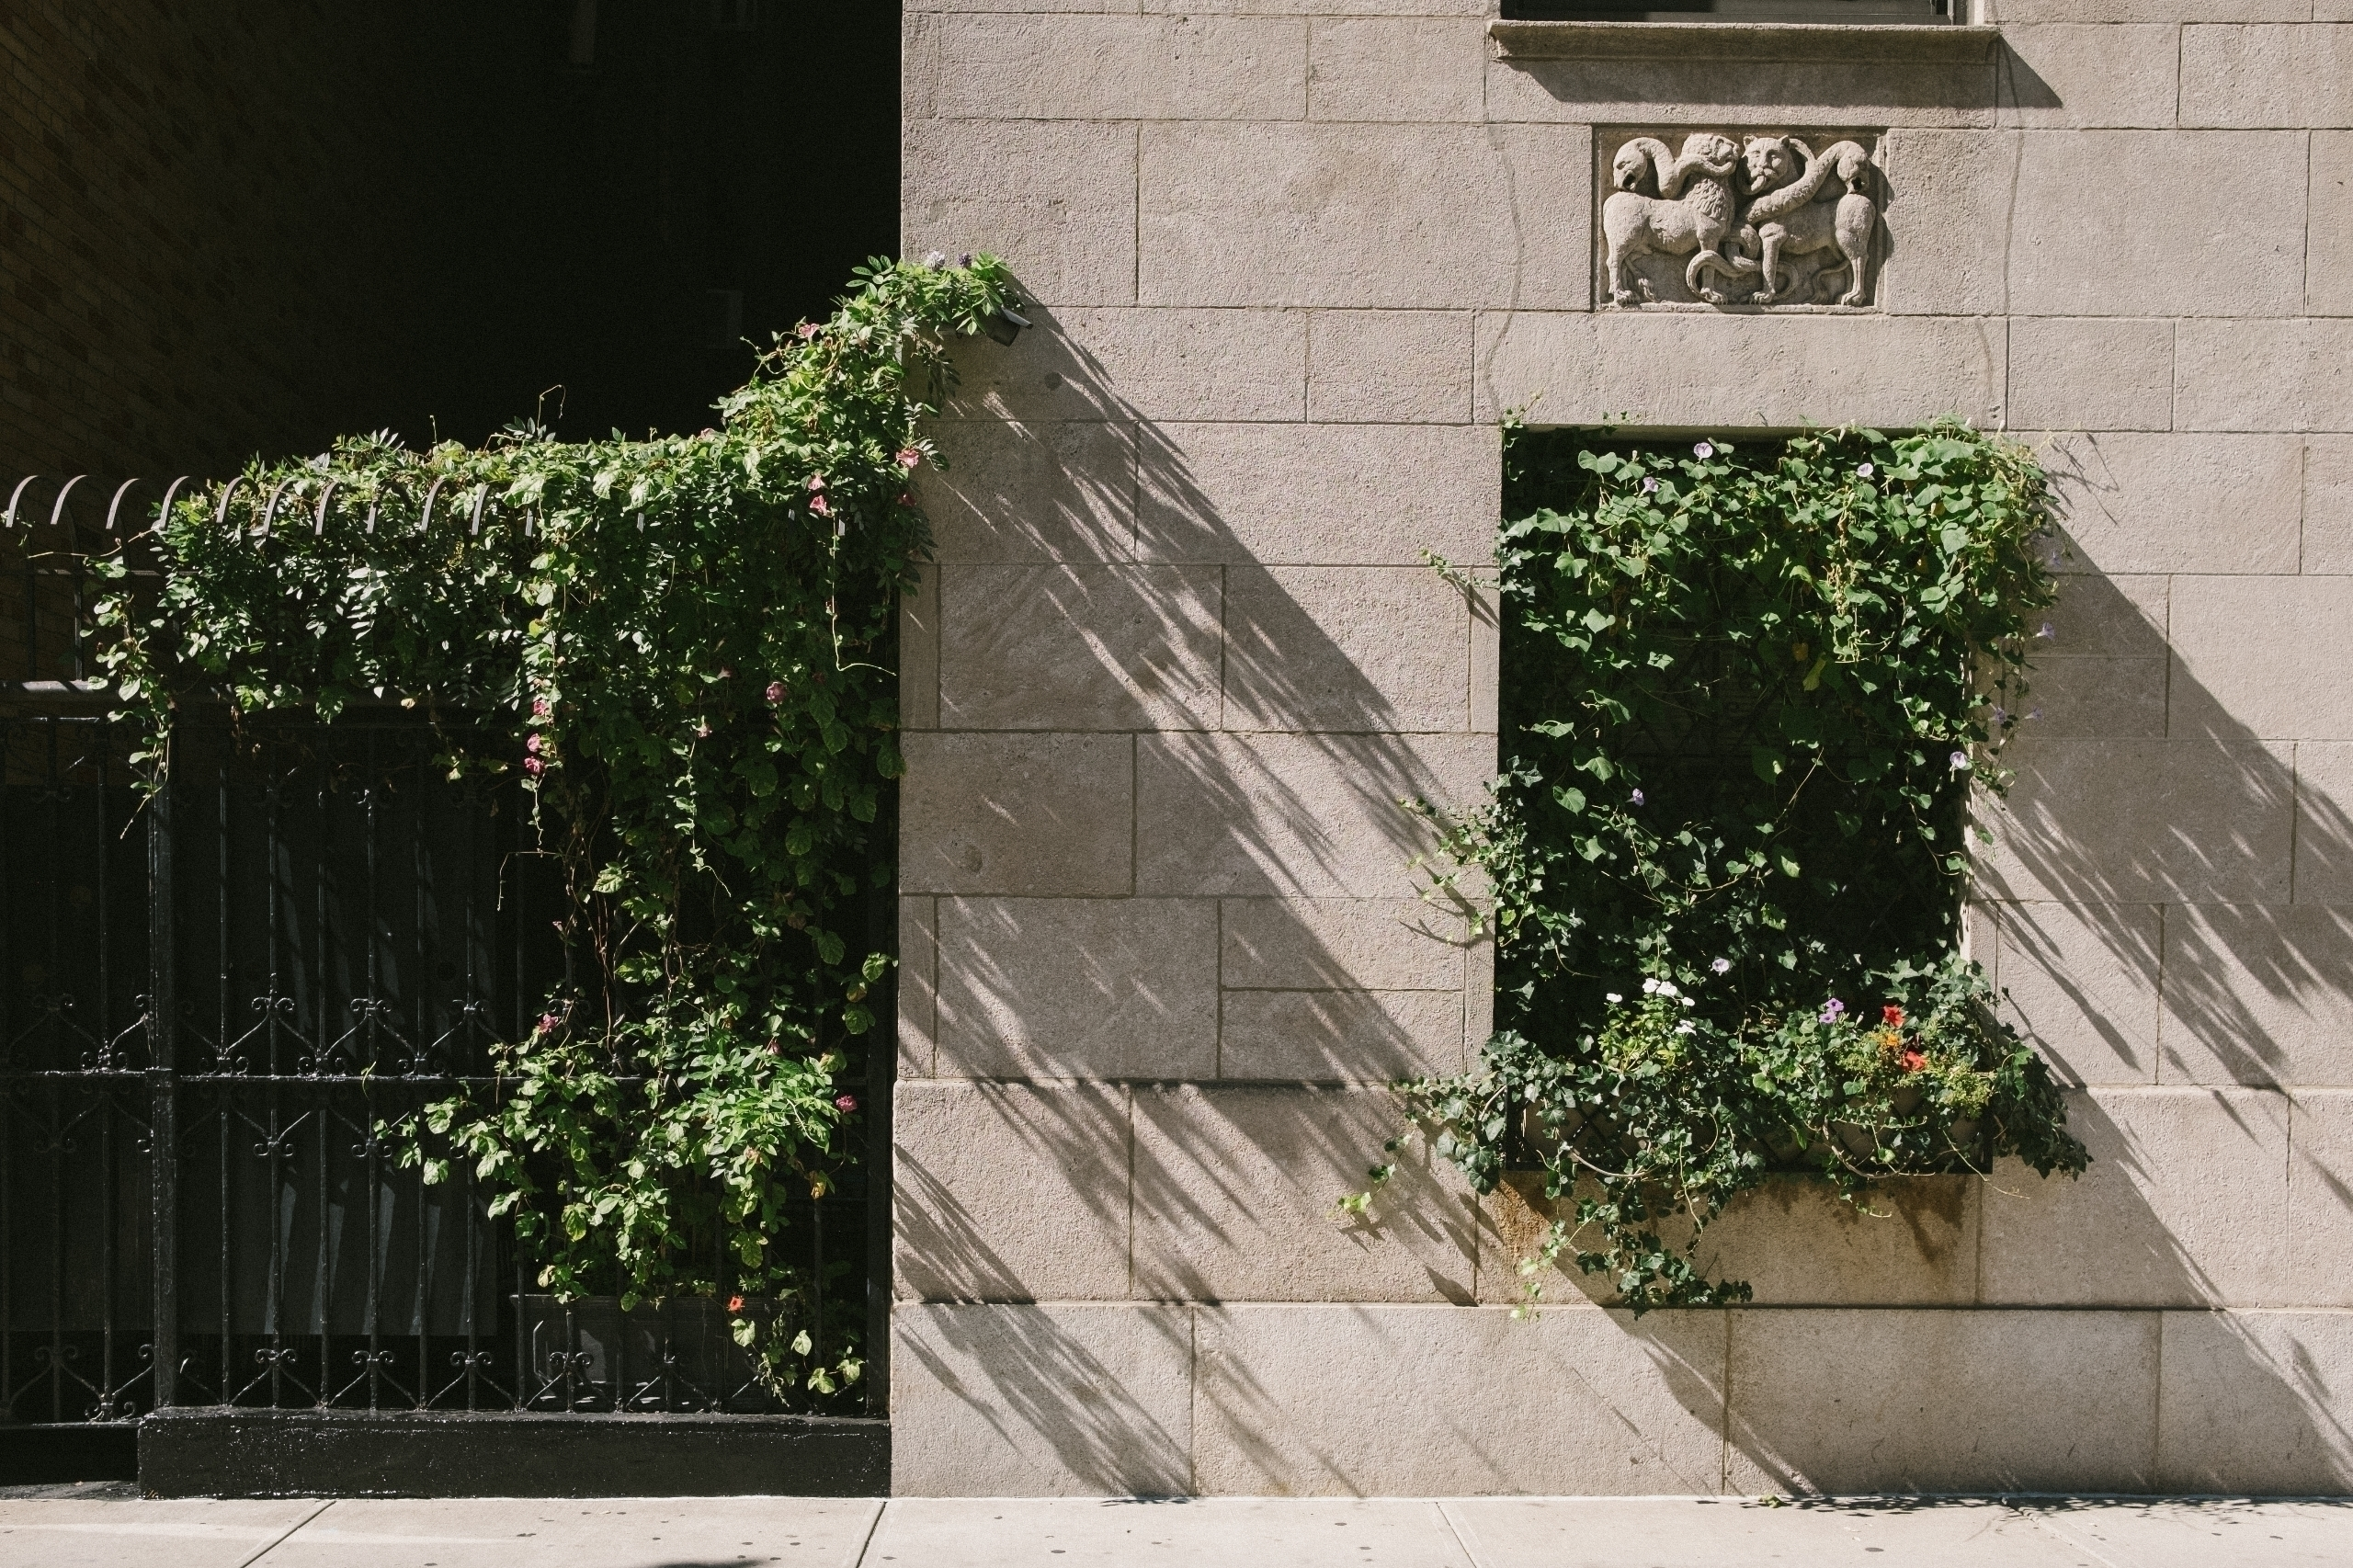 Grape Vines idea window - streetphotography - mikeyboards | ello